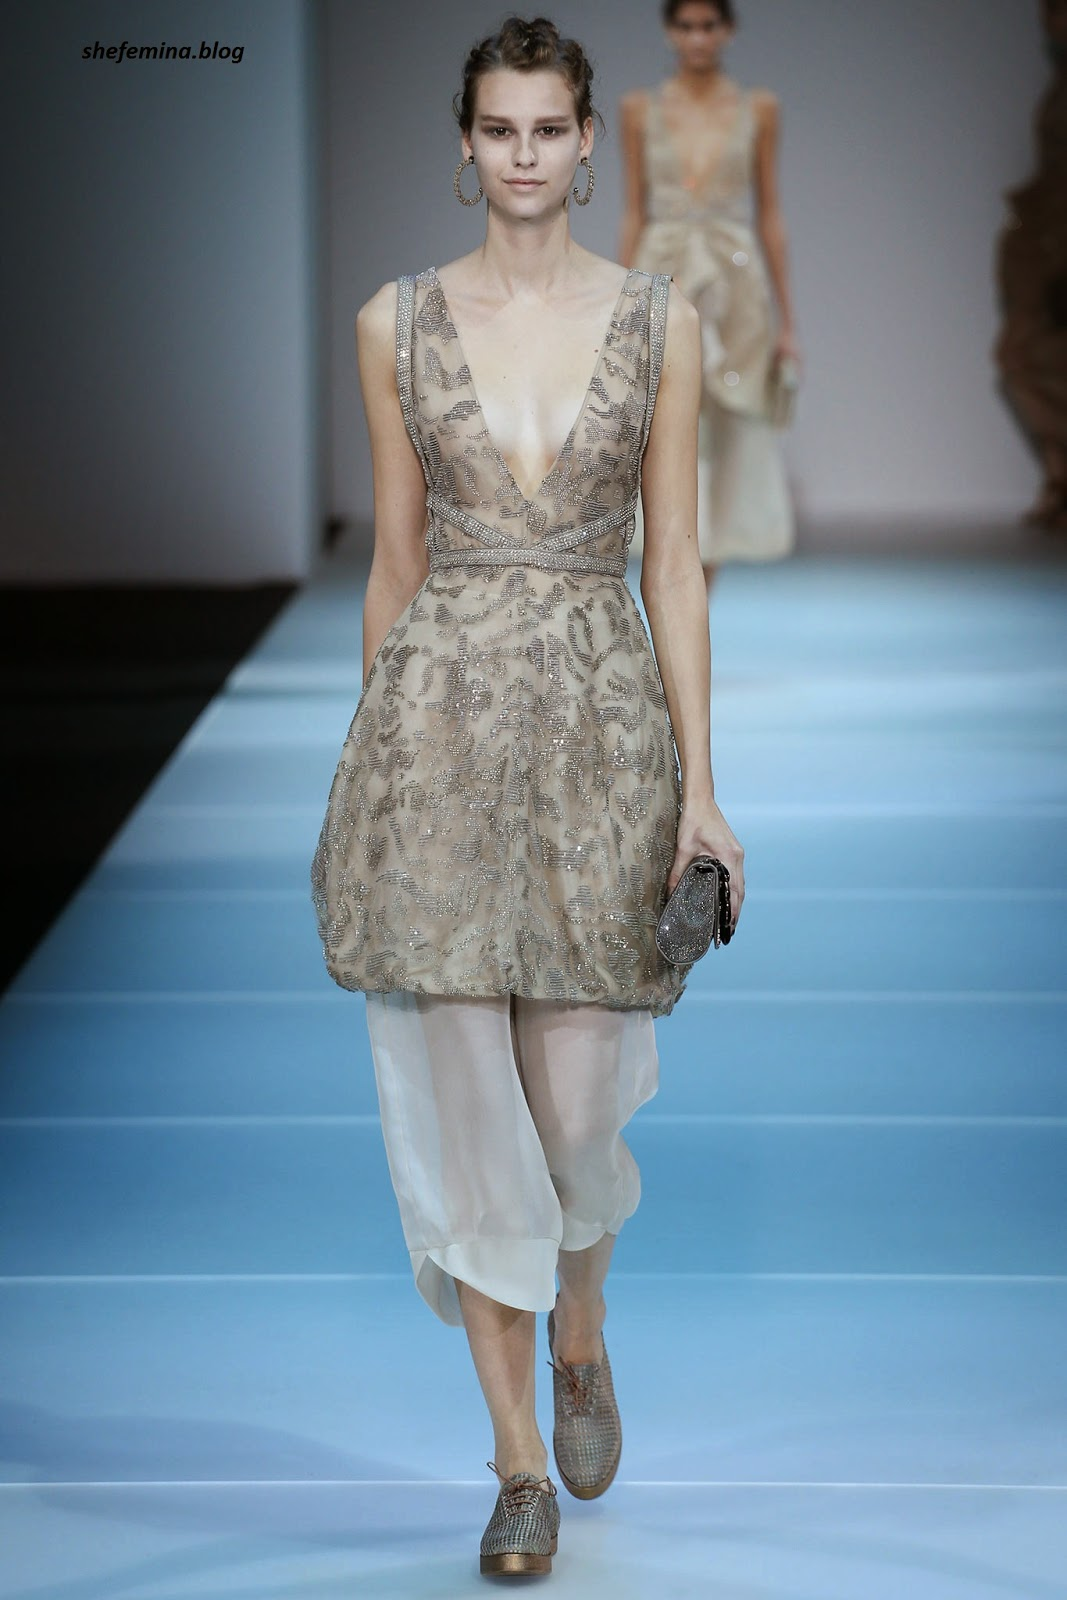 13a17441e089 Giorgio Armani Spring 2015 Ready-to-Wear Dresses Collation at Fashioh Show  Runway